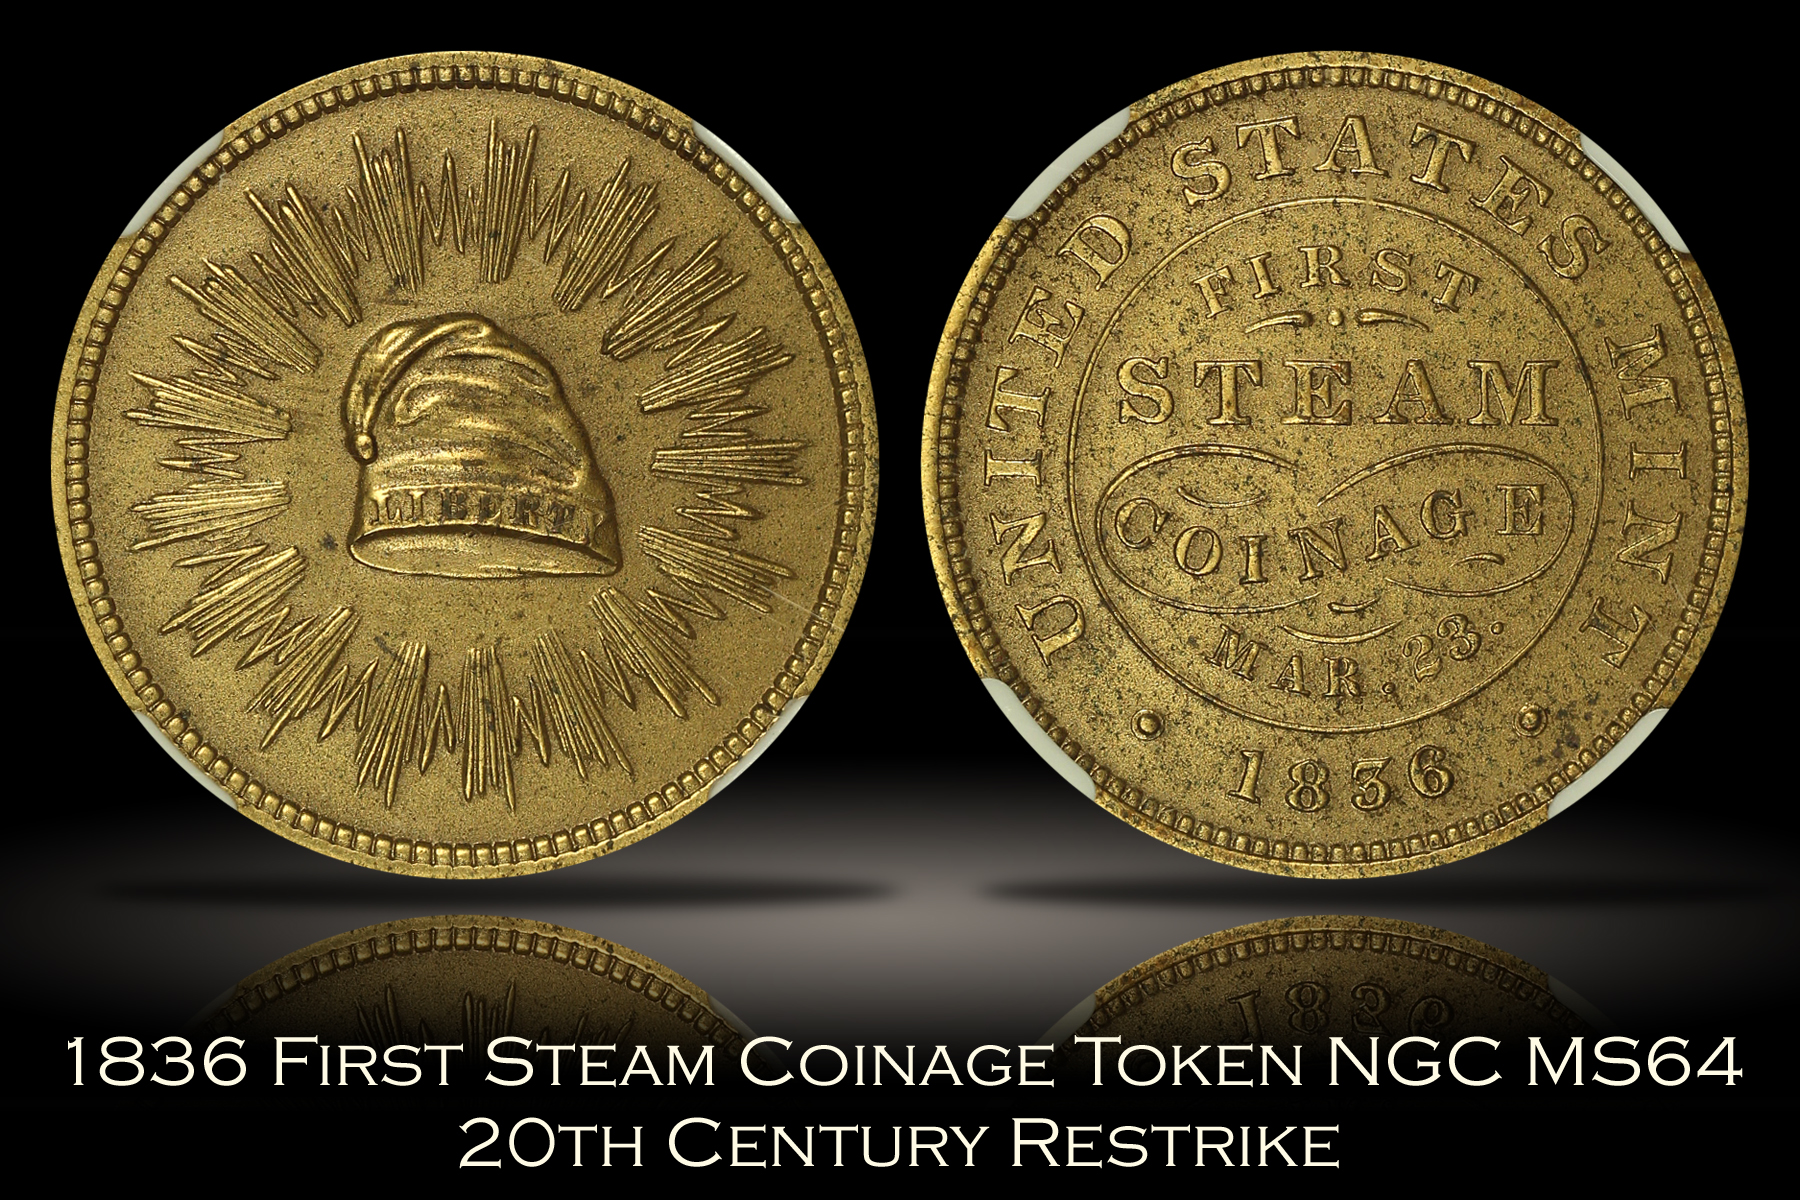 1836 First Steam Coinage Token NGC MS64 Restrike